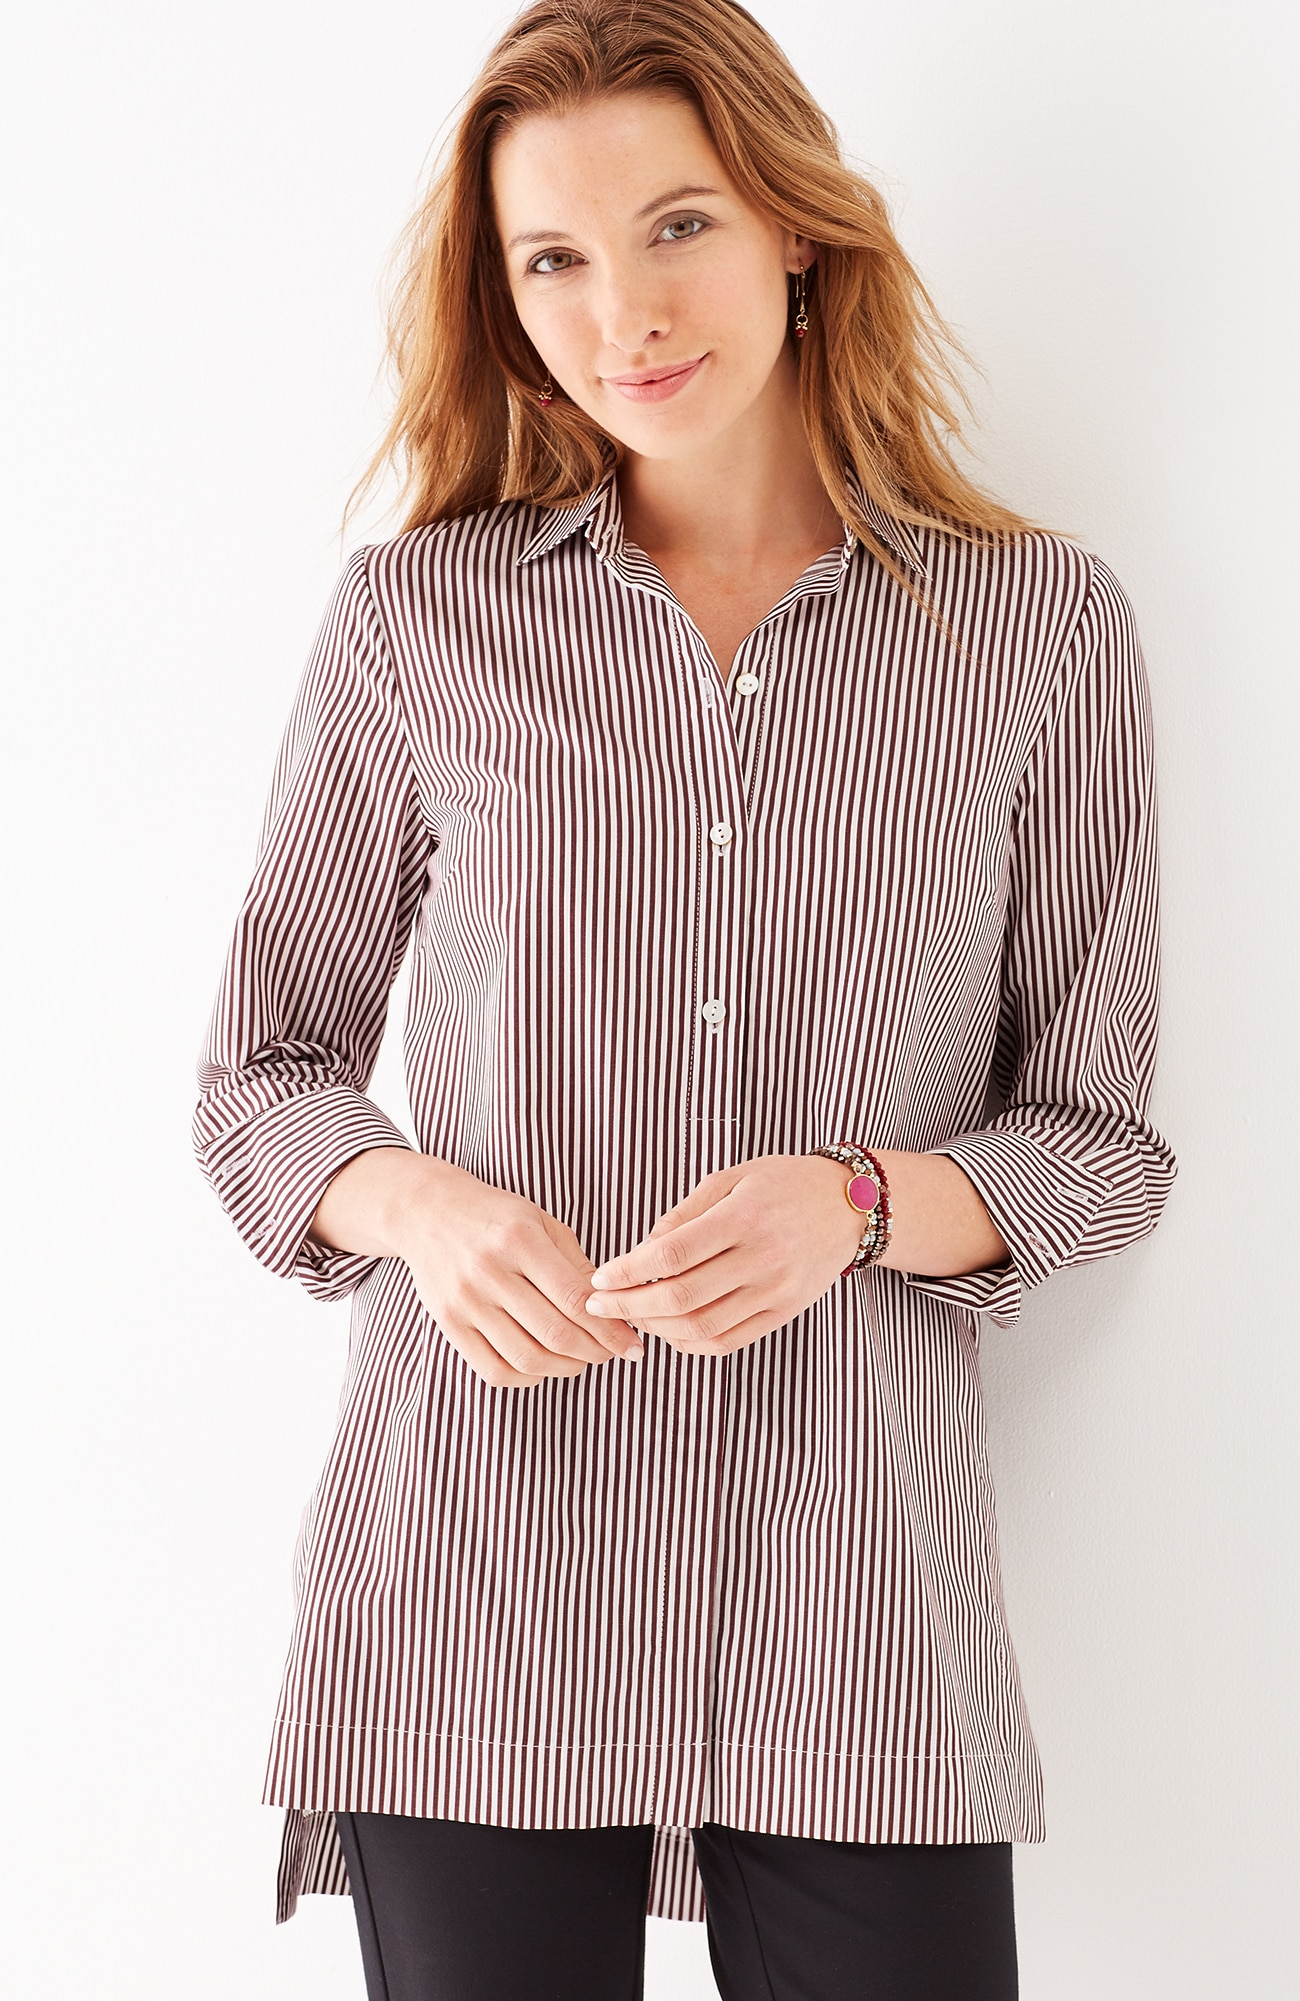 linear stripes A-line tunic